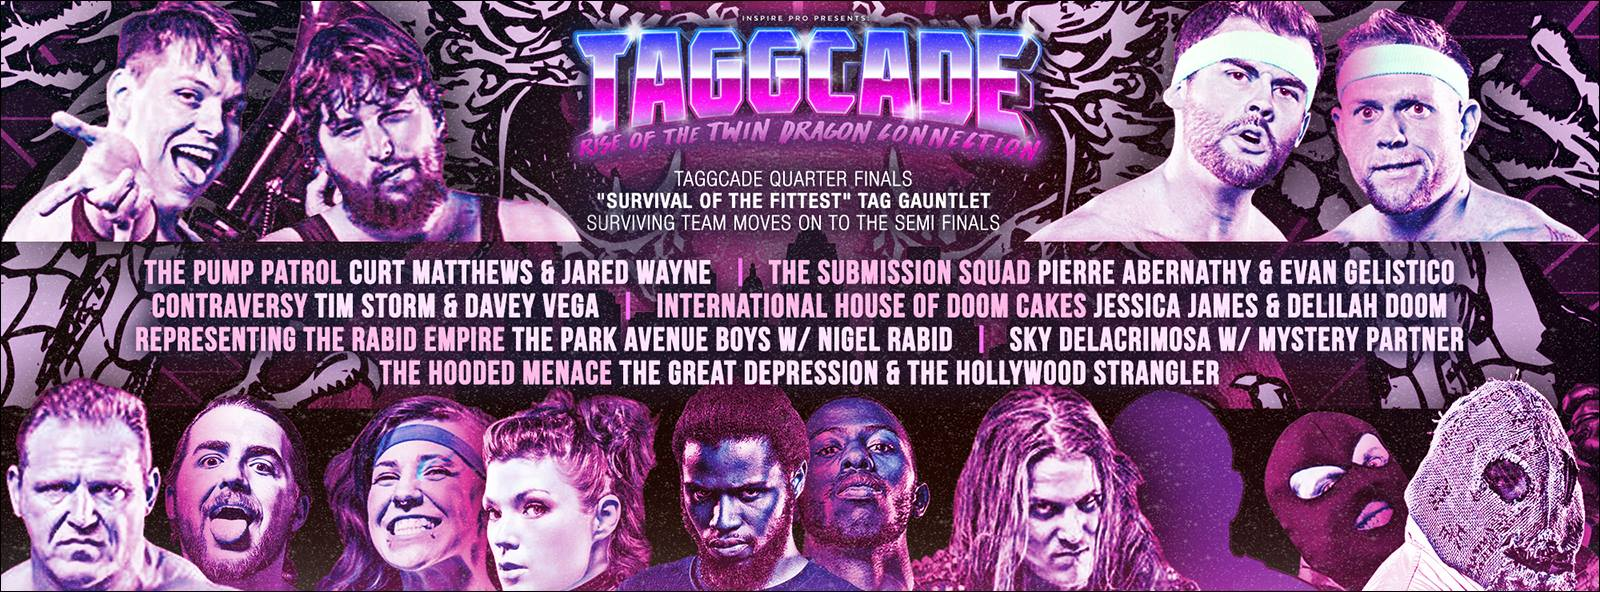 Taggcade: Rise Of The Twin Dragon Connection — 11.1.15 in ...